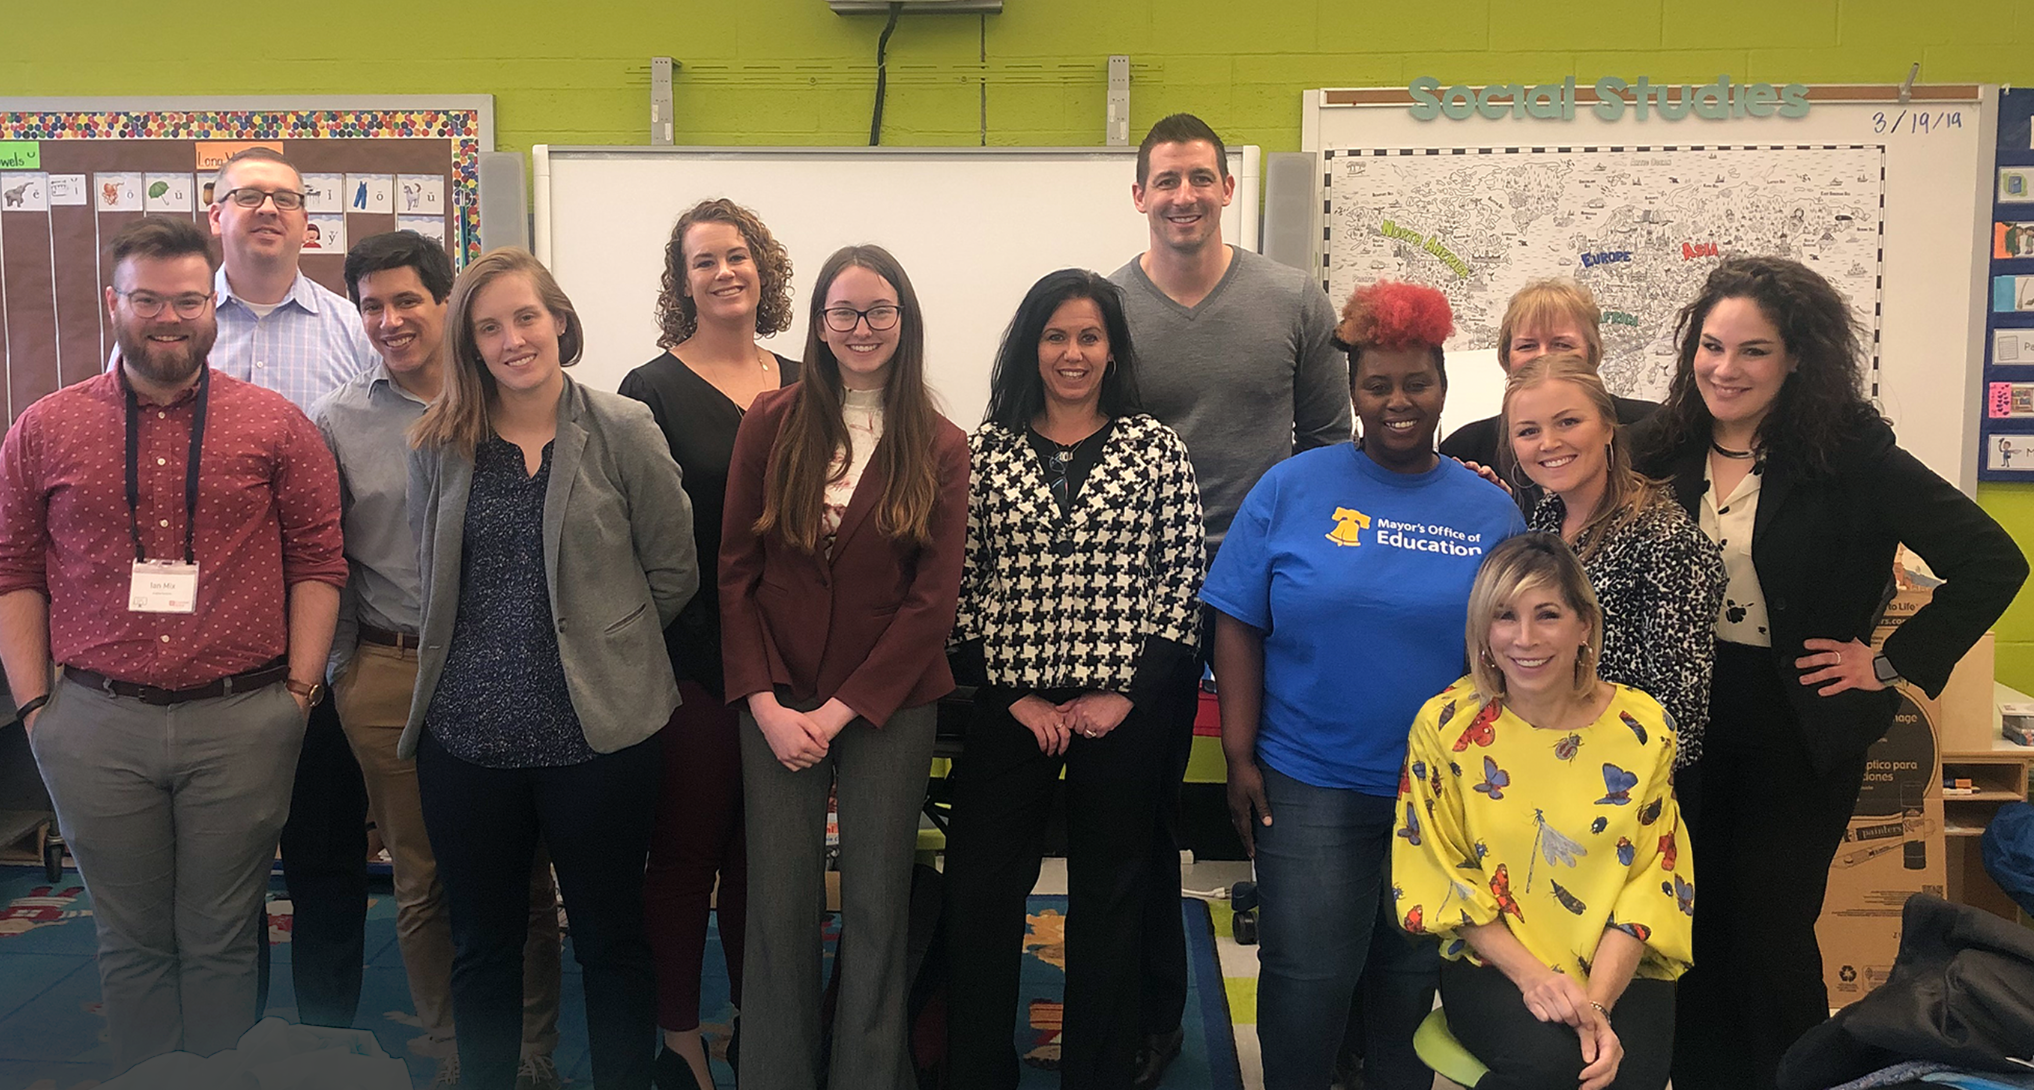 Alain Locke Elementary Career Day 2019 - Click Here to Open the Gallery